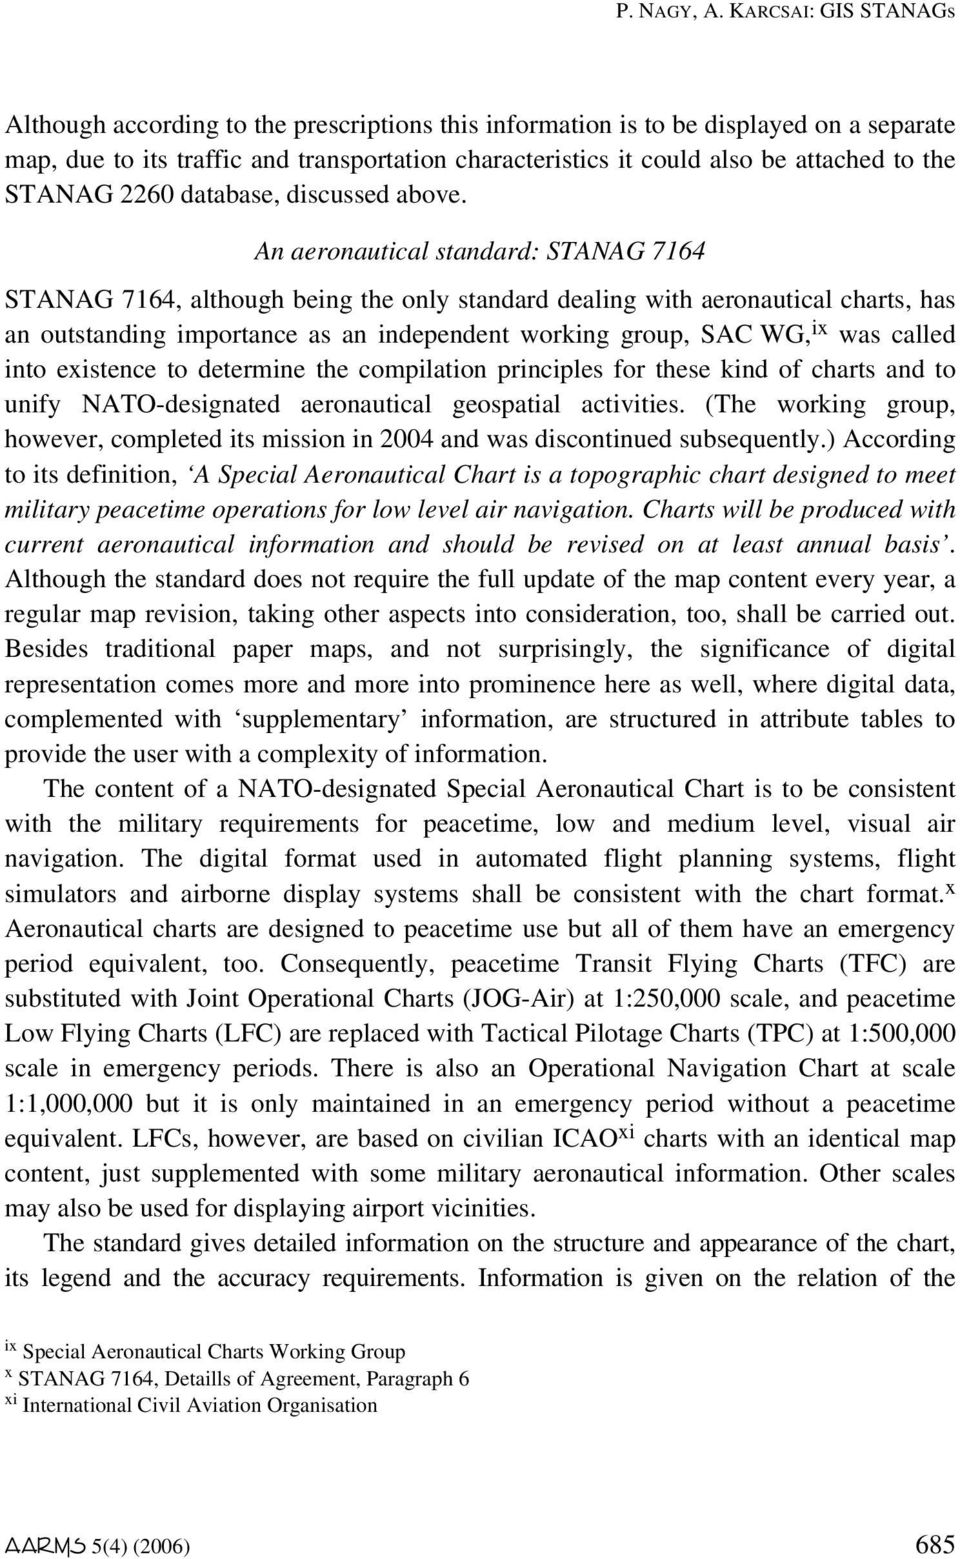 An aeronautical standard: STANAG 7164 STANAG 7164, although being the only standard dealing with aeronautical charts, has an outstanding importance as an independent working group, SAC WG, ix was